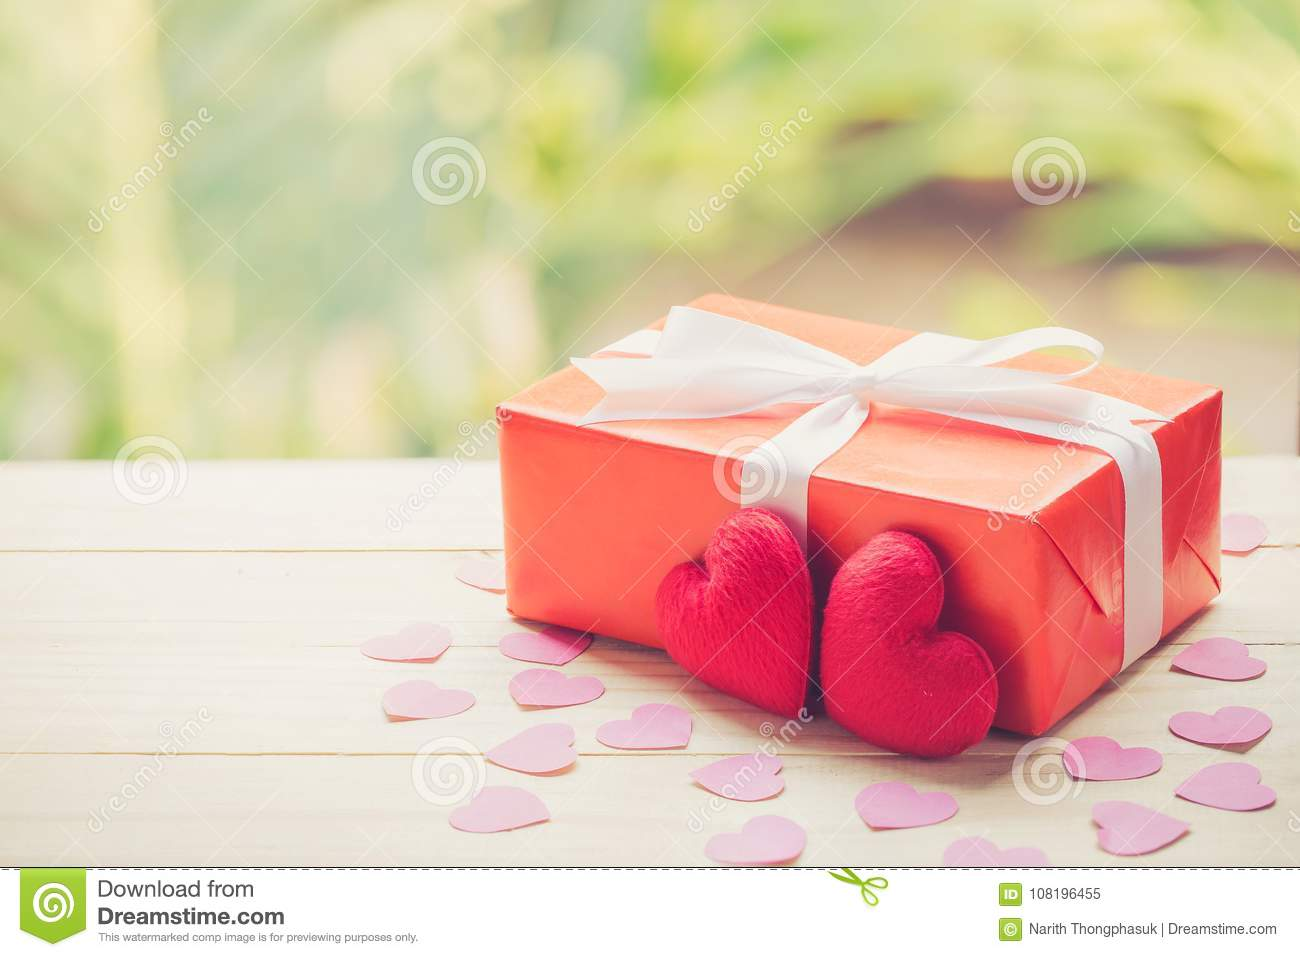 Red gift box and heart shape on wood table top with nature green blur bokeh background.